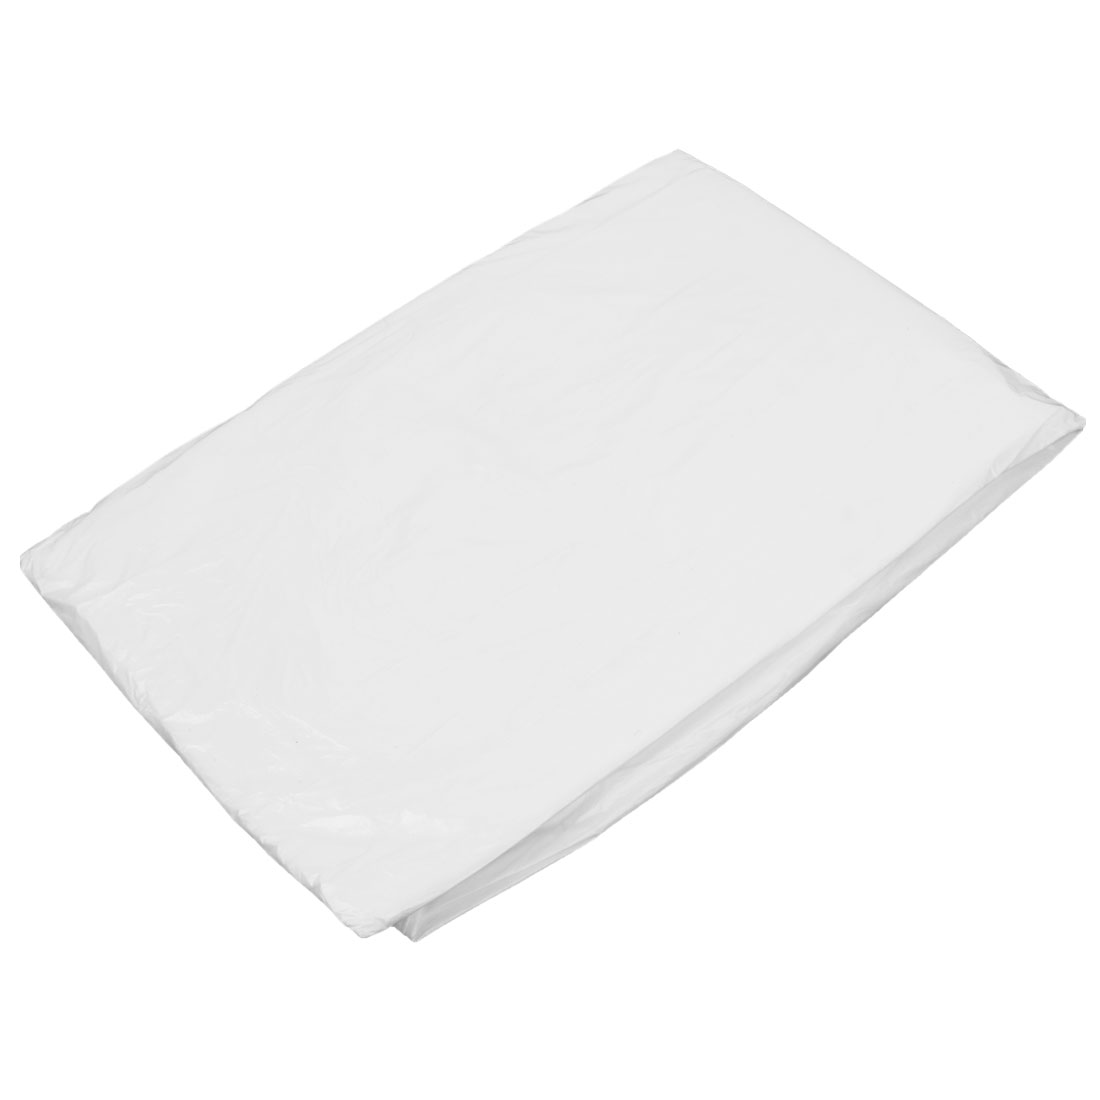 10 Pcs 5.2Ft x 5.2Ft Disposable Film Table Cloth Cover Decor Clear White